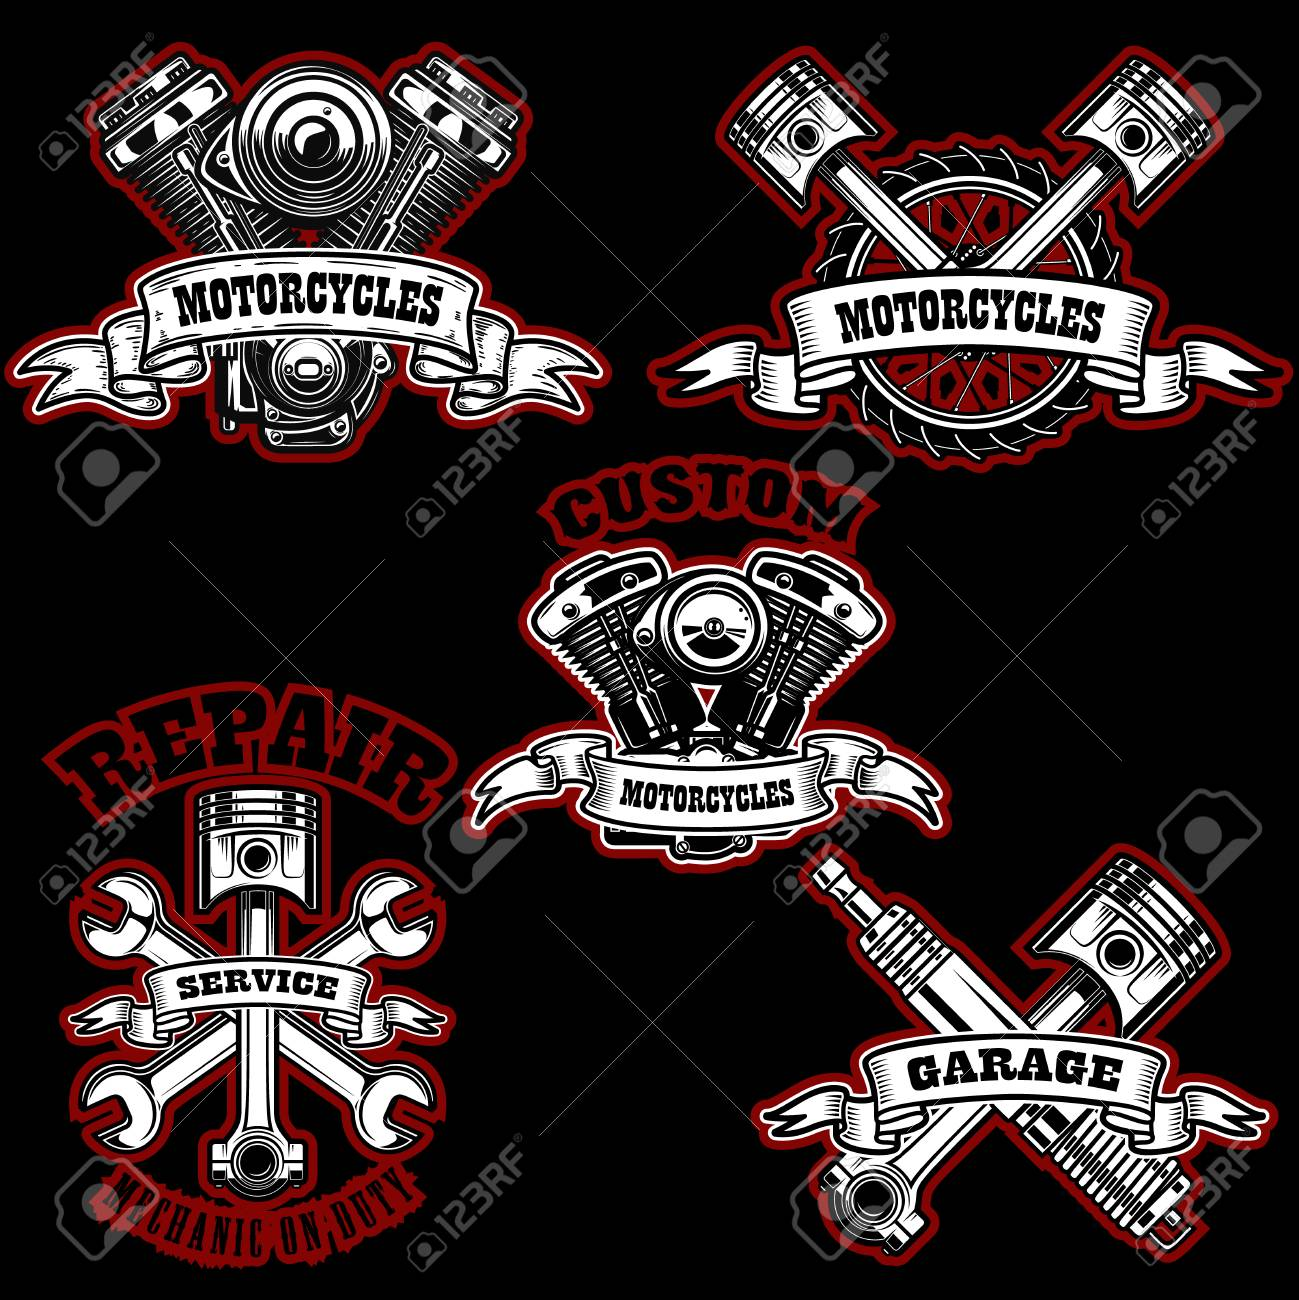 Set Of Motorcycle Repair Emblems Bike Motor Pistons Design Royalty Free Cliparts Vectors And Stock Illustration Image 110864396